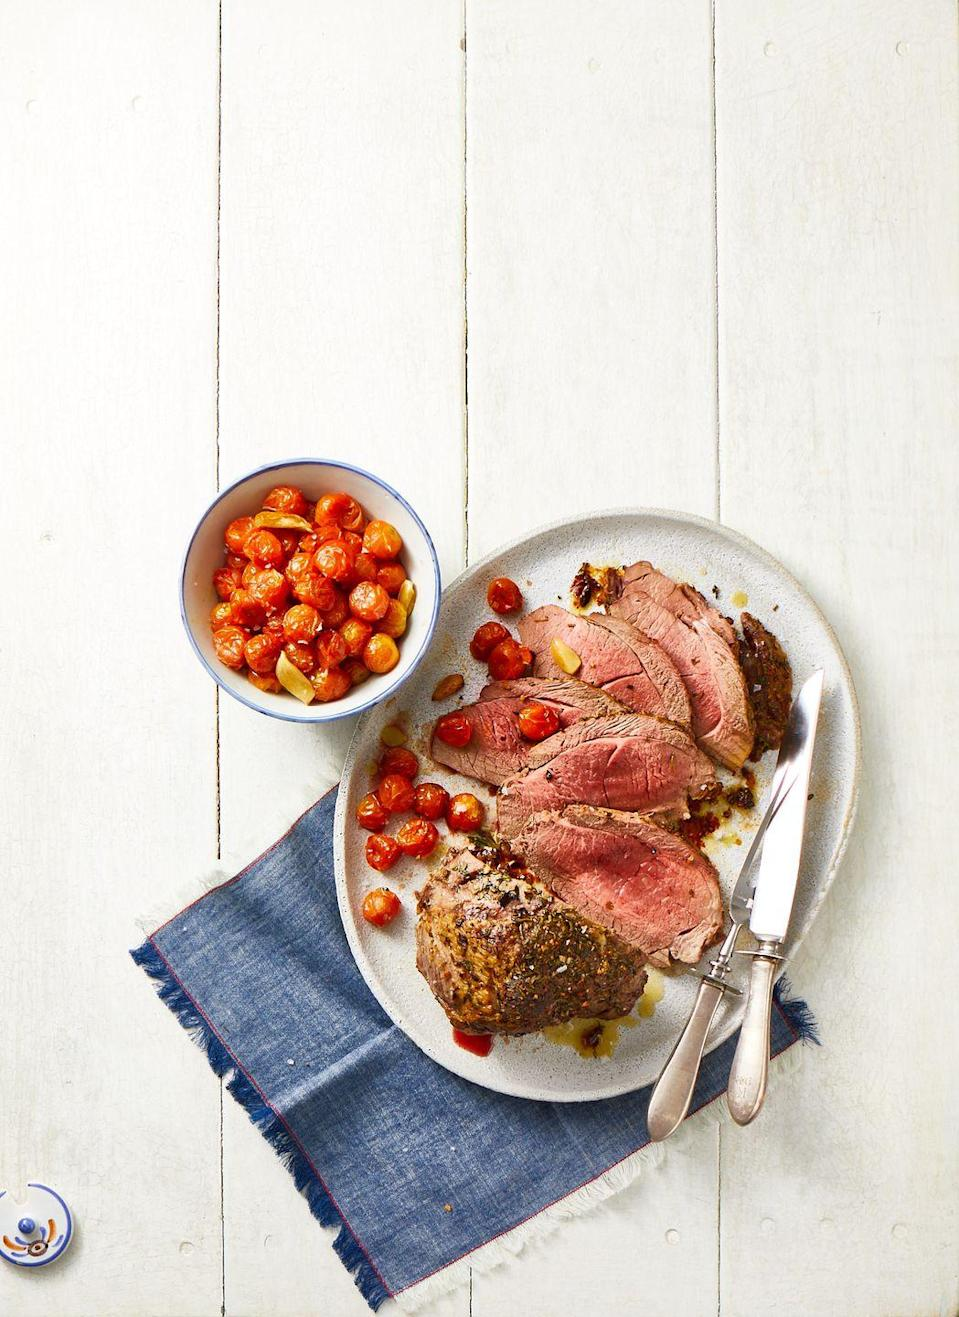 """<p>Lamb top round (a tender, relatively quick-cooking part of the leg) with garlic, rosemary, thyme and grape tomatoes will impress at your family's seder.</p><p><em><a href=""""https://www.goodhousekeeping.com/food-recipes/a35471038/best-roast-lamb-recipe/"""" rel=""""nofollow noopener"""" target=""""_blank"""" data-ylk=""""slk:Get the recipe for Roast Lamb »"""" class=""""link rapid-noclick-resp"""">Get the recipe for Roast Lamb »</a></em></p>"""